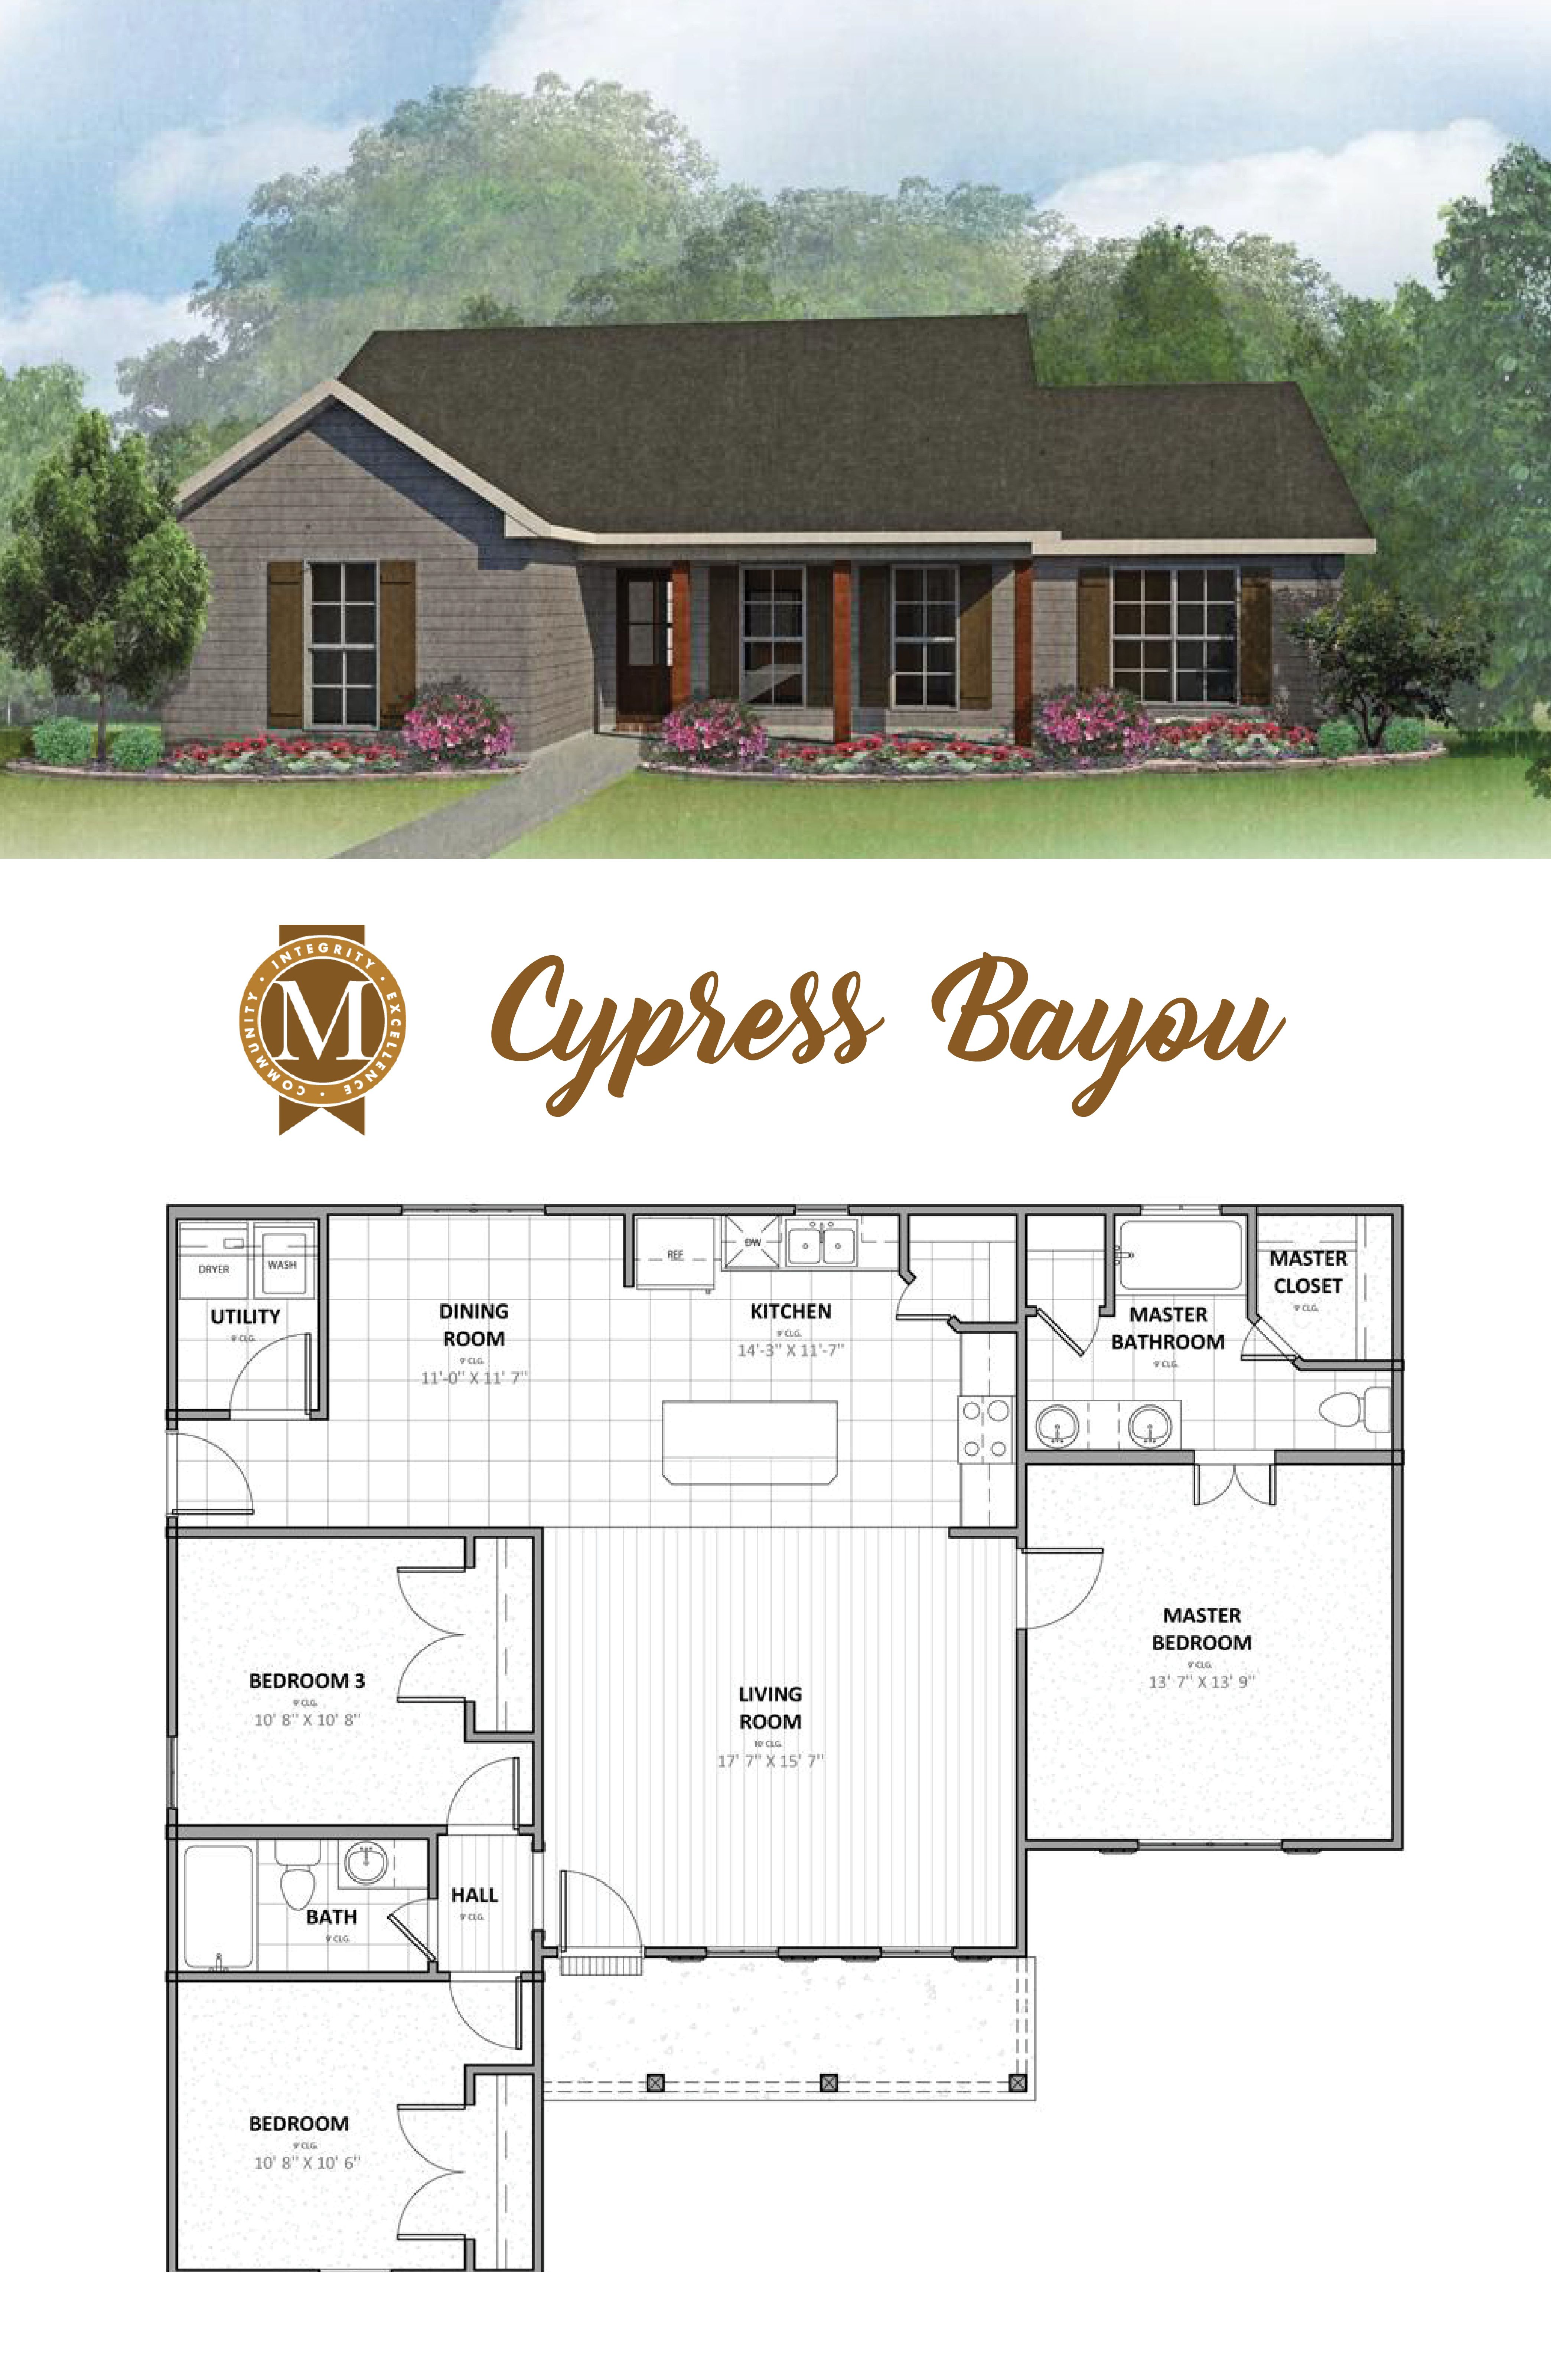 Living Sq Ft 1 400 Bedrooms 3 Baths 2 Lafayette Lake Charles Baton Rouge Louisiana New House Plans House Plans House Layouts